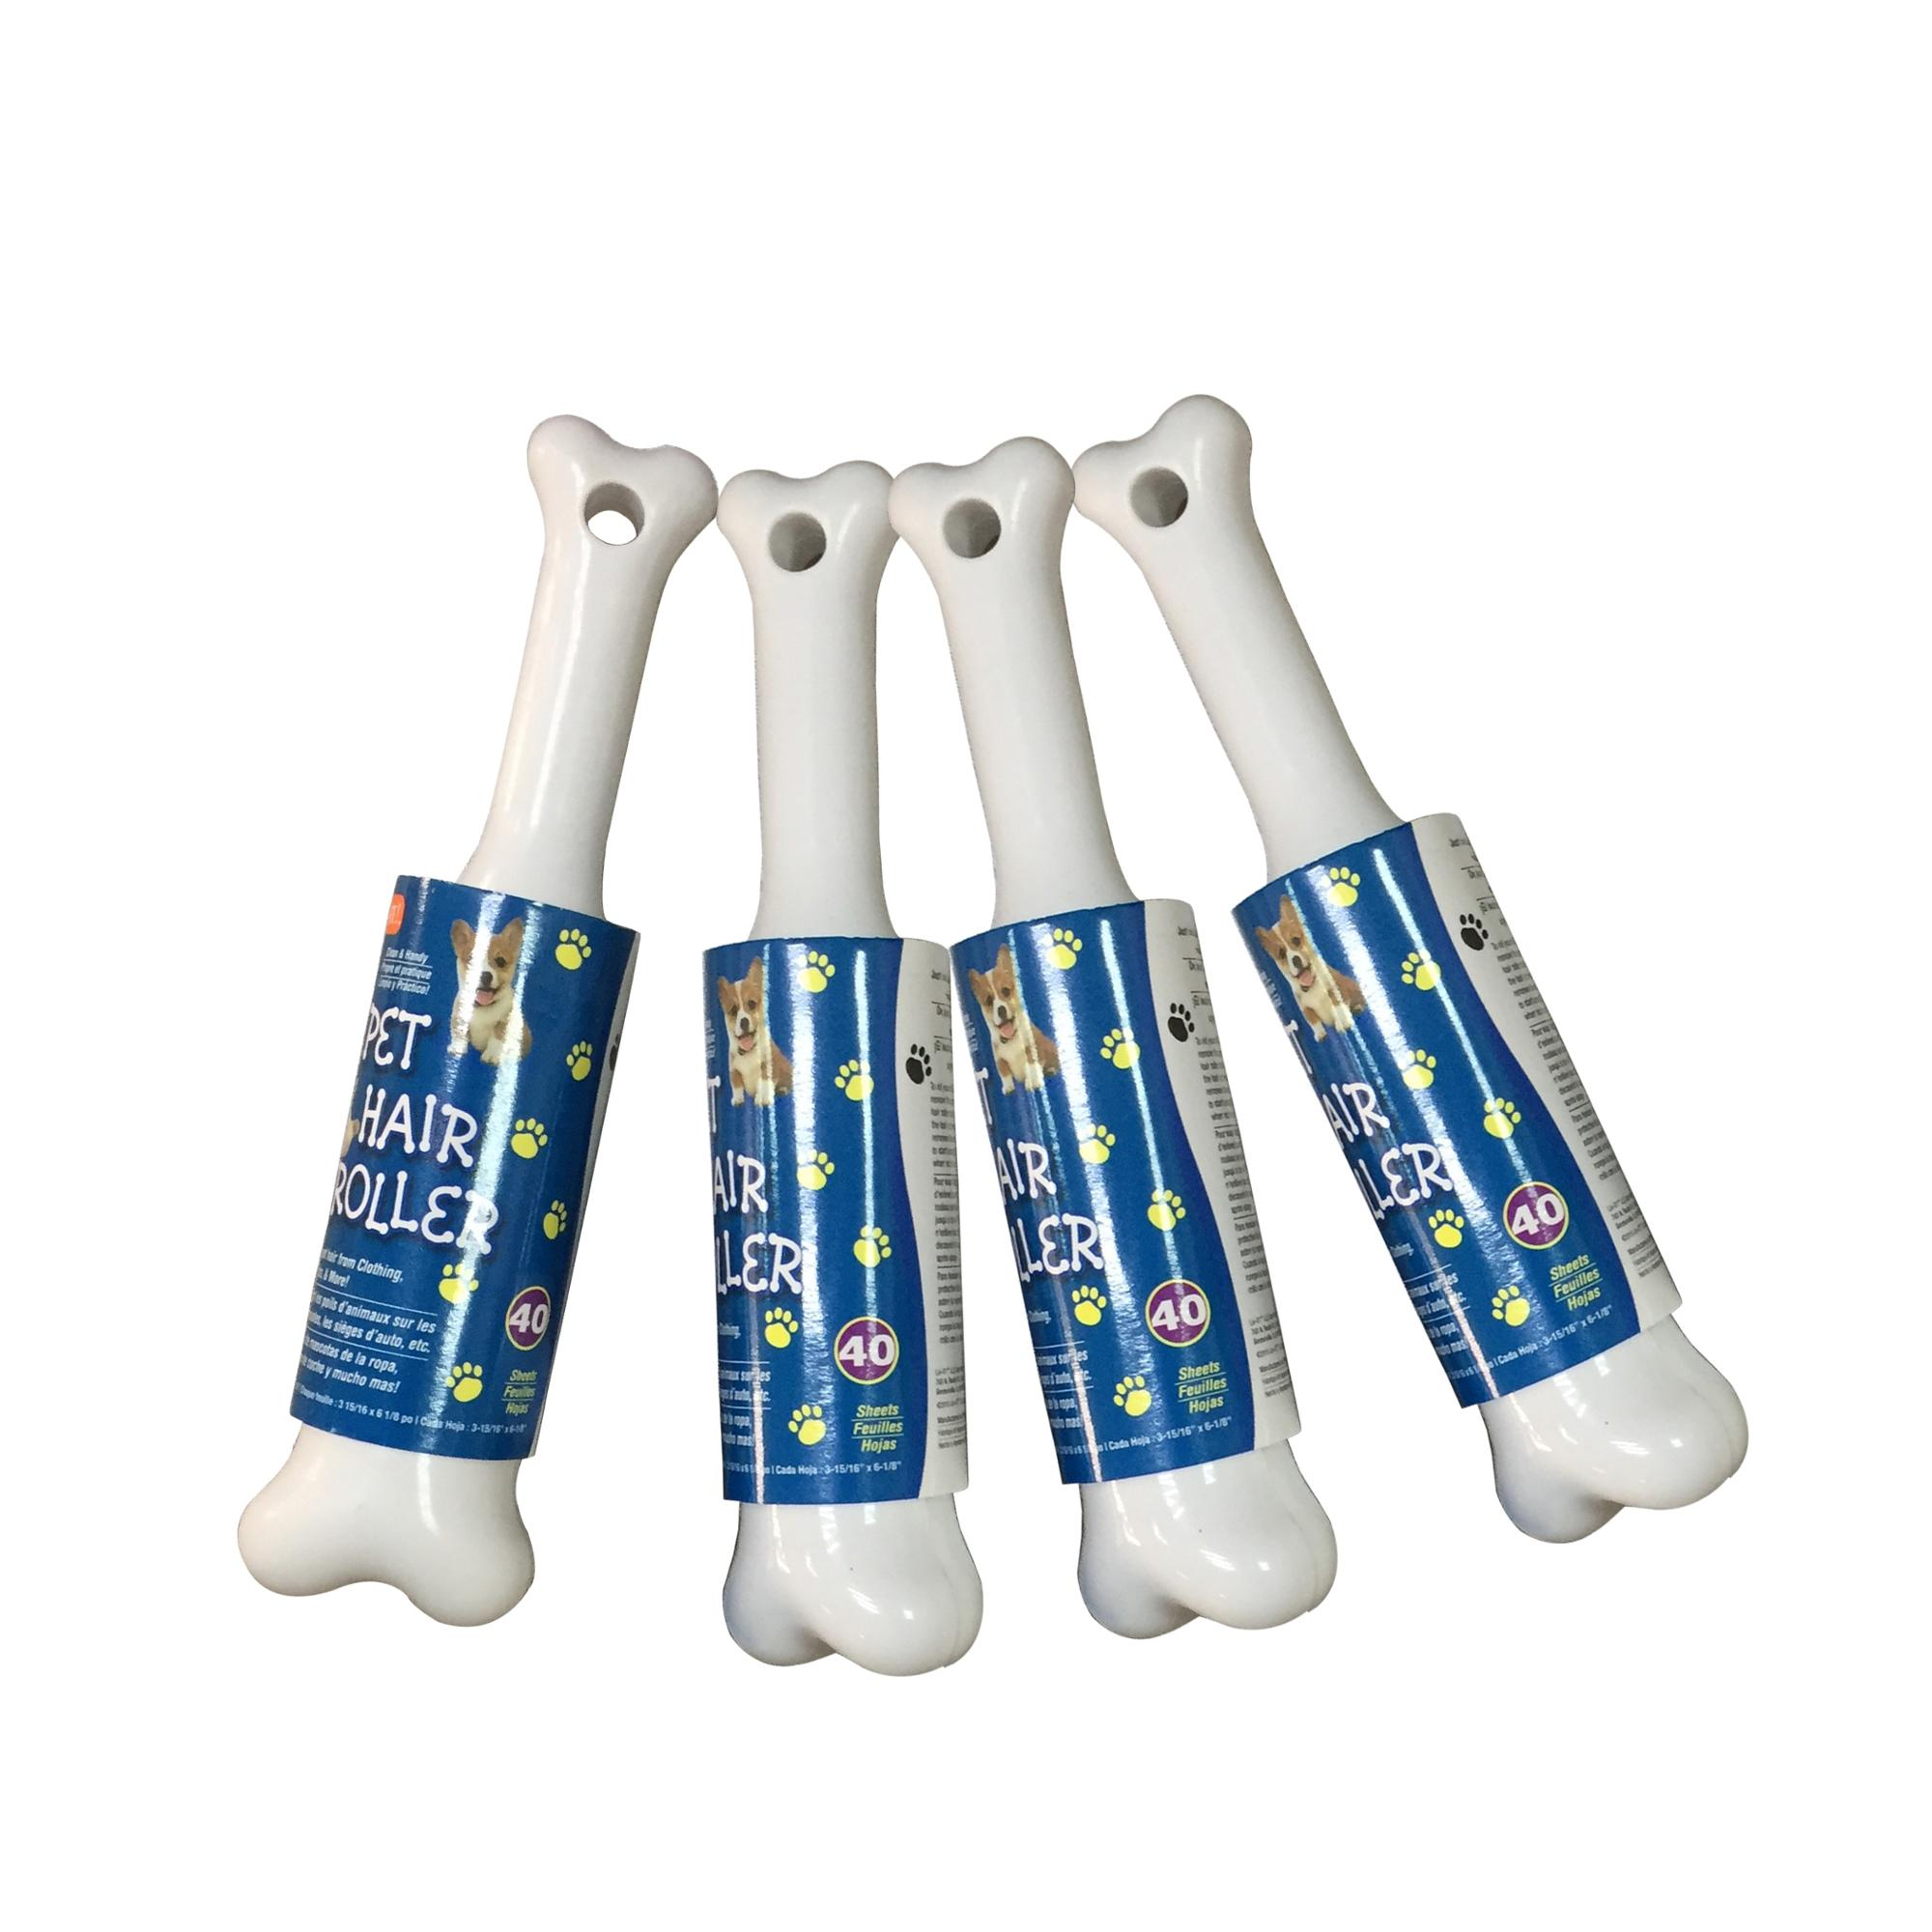 New Bone Cleaning Lint Roller for Household